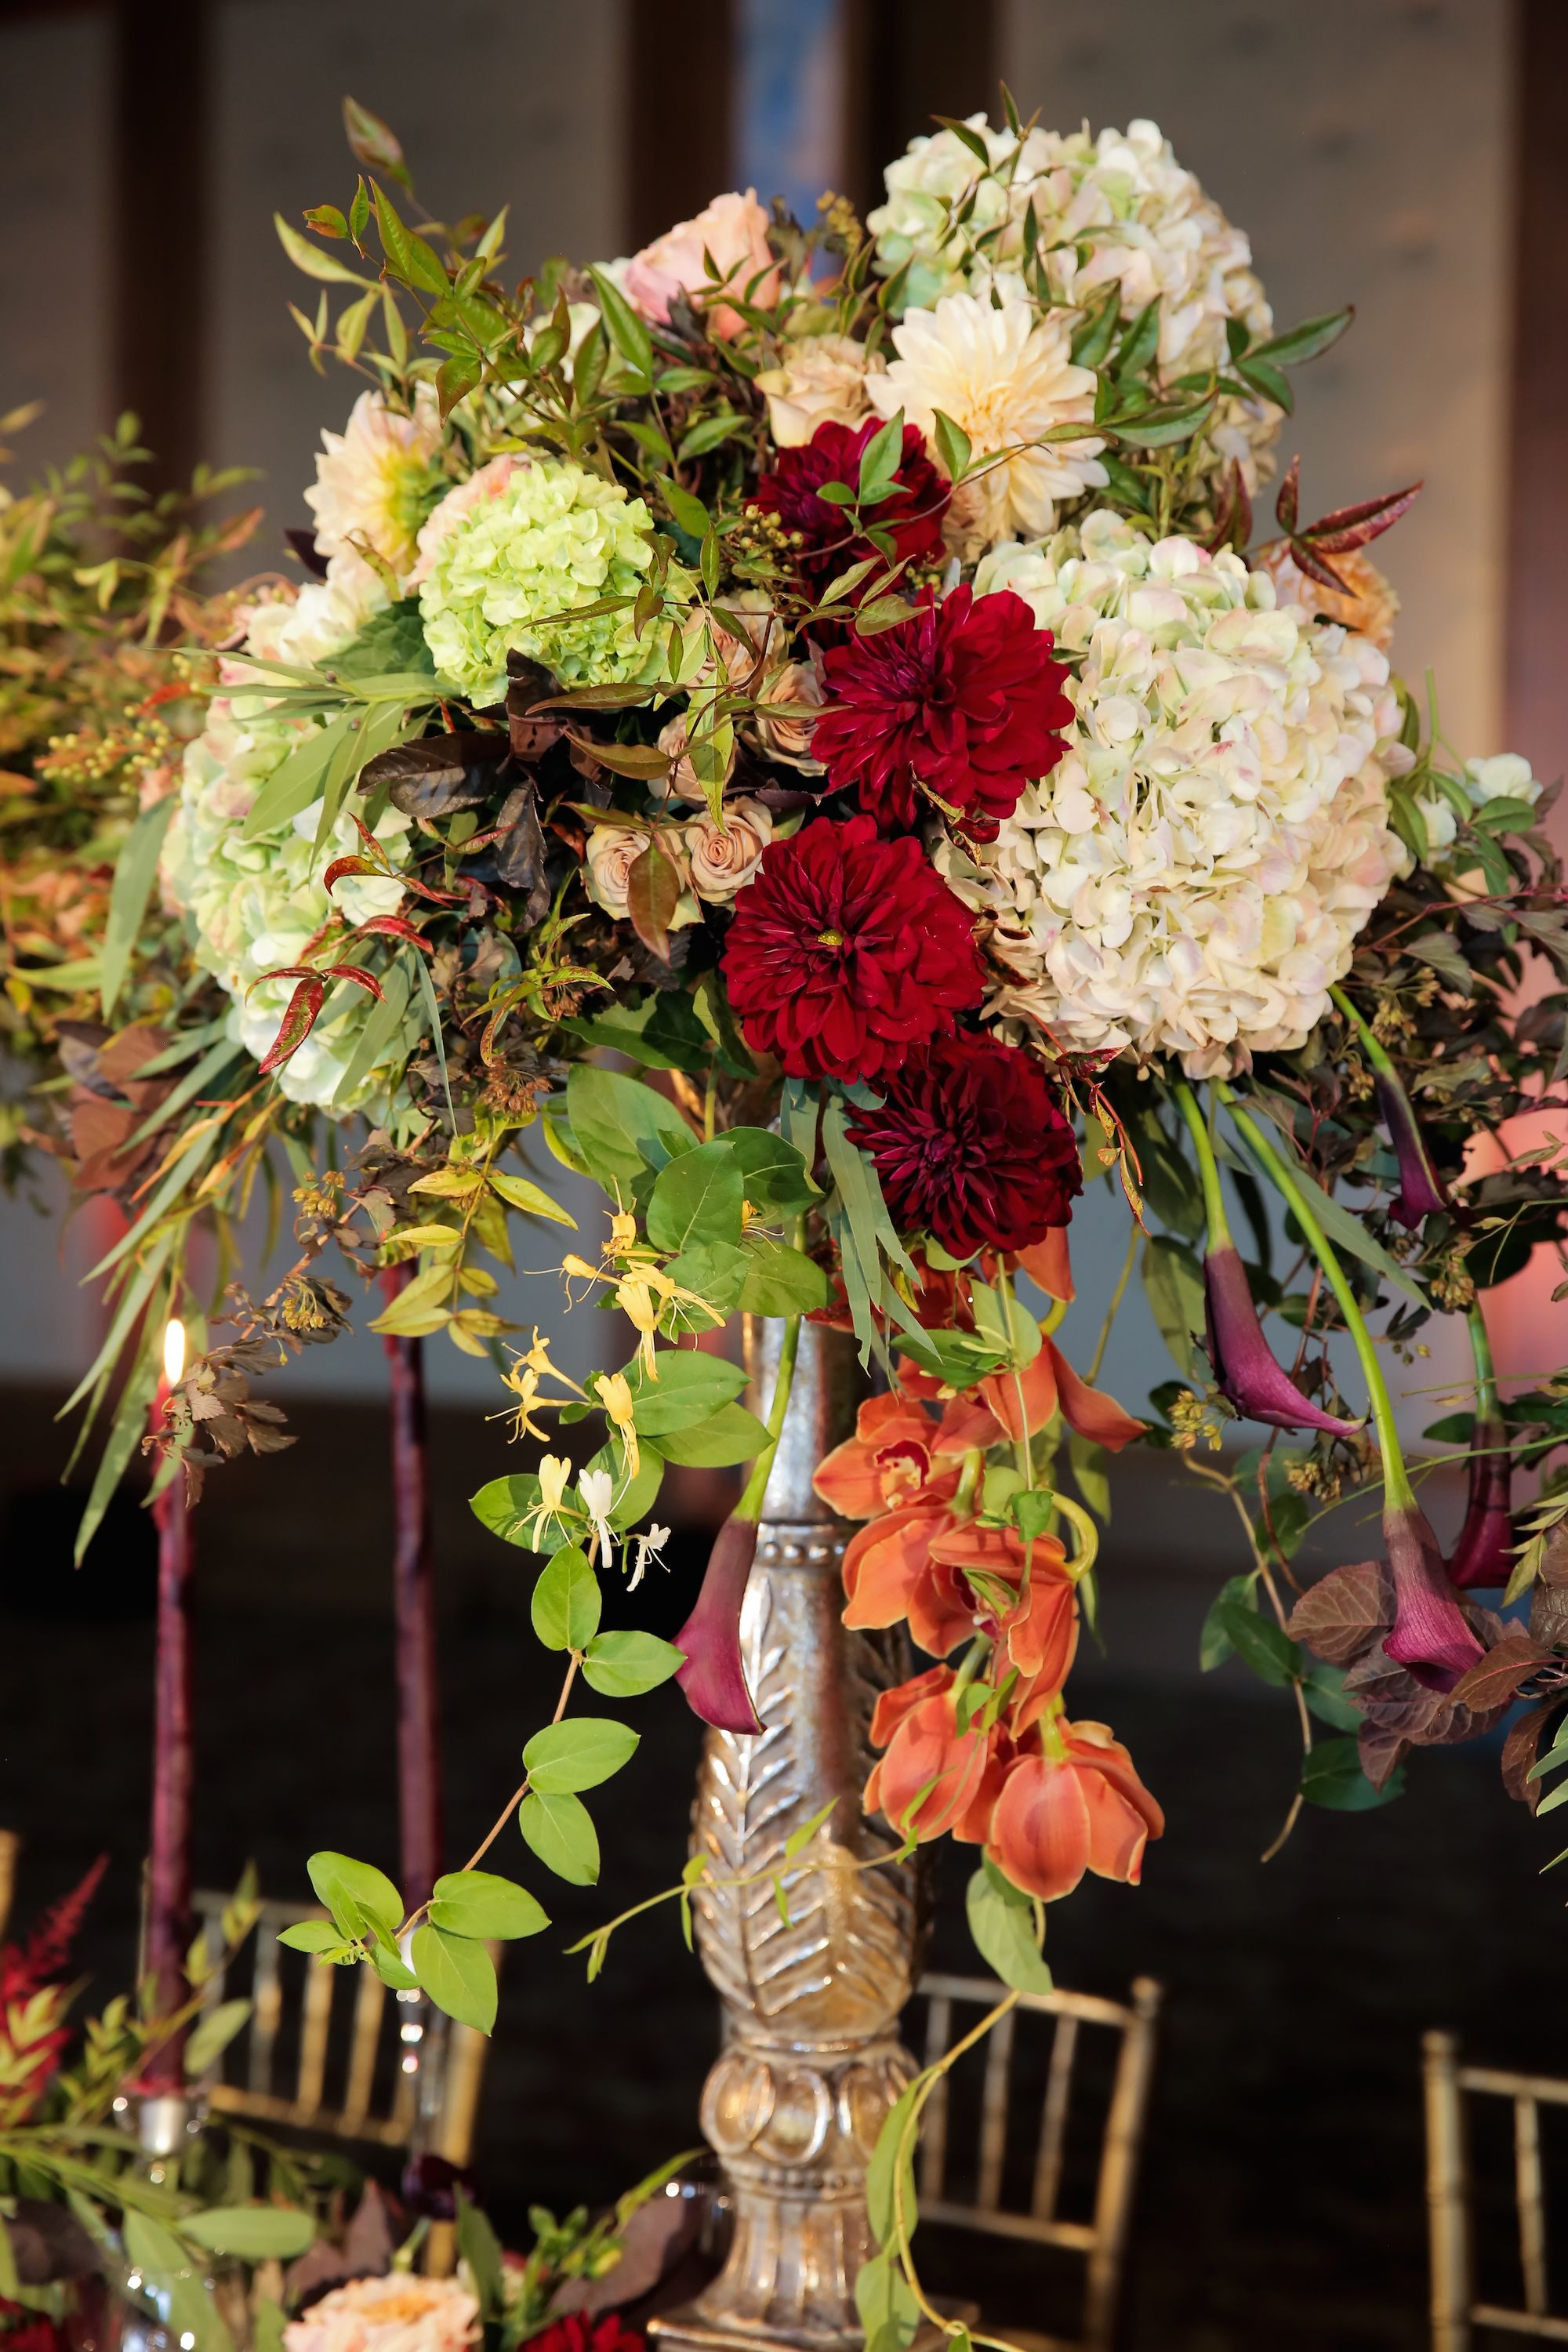 20 best fall wedding flowers wedding bouquets and centerpieces for 20 best fall wedding flowers wedding bouquets and centerpieces for fall junglespirit Images